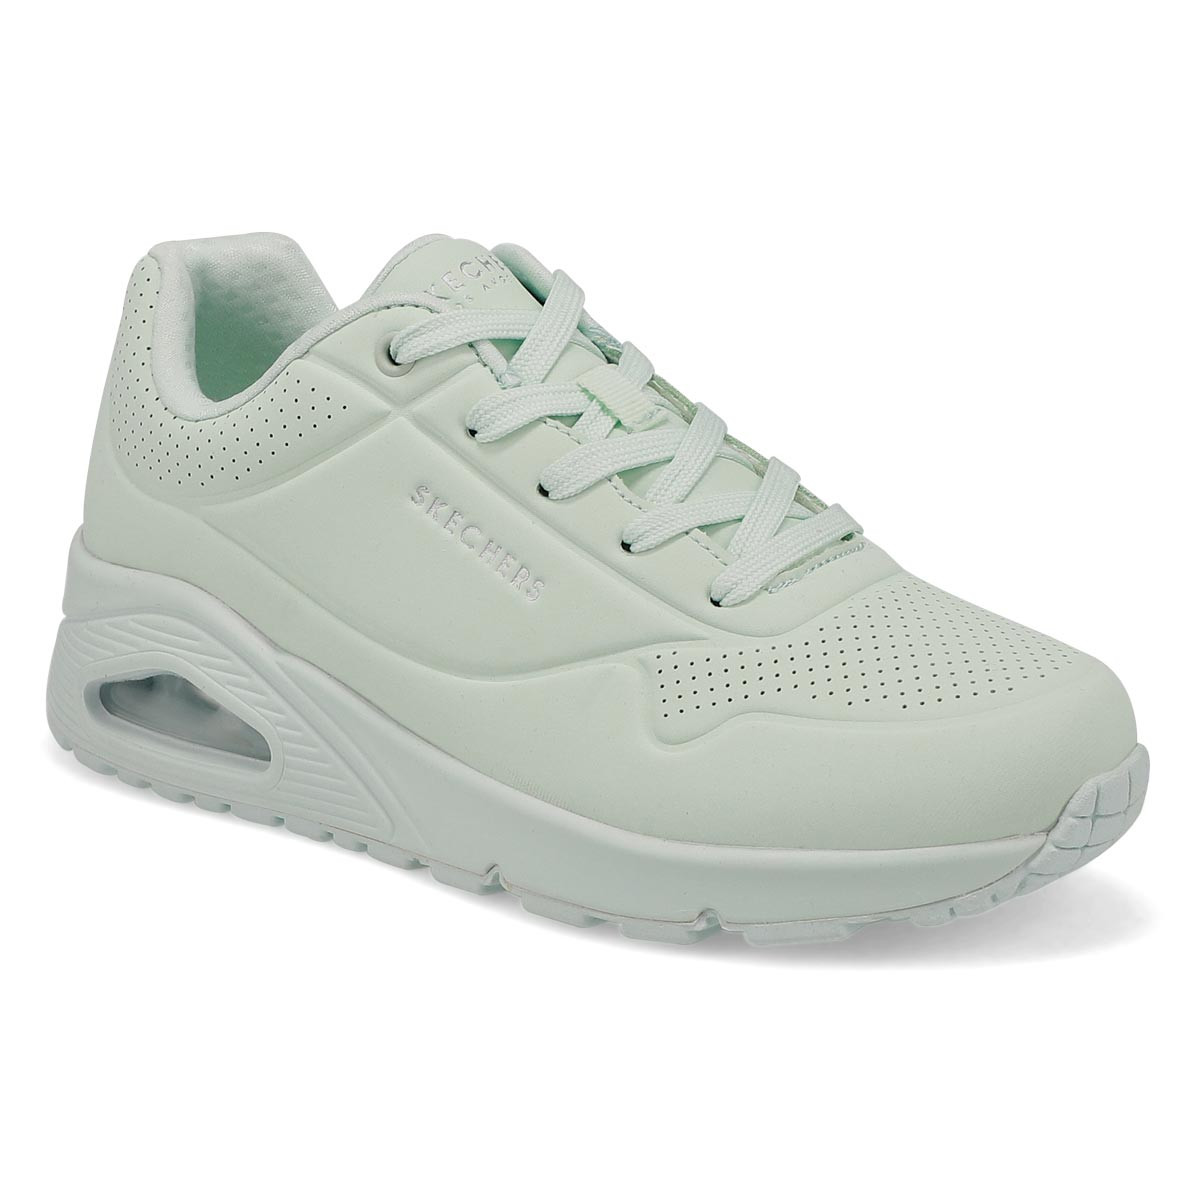 Women's Uno Stand On Air Sneaker - Mint